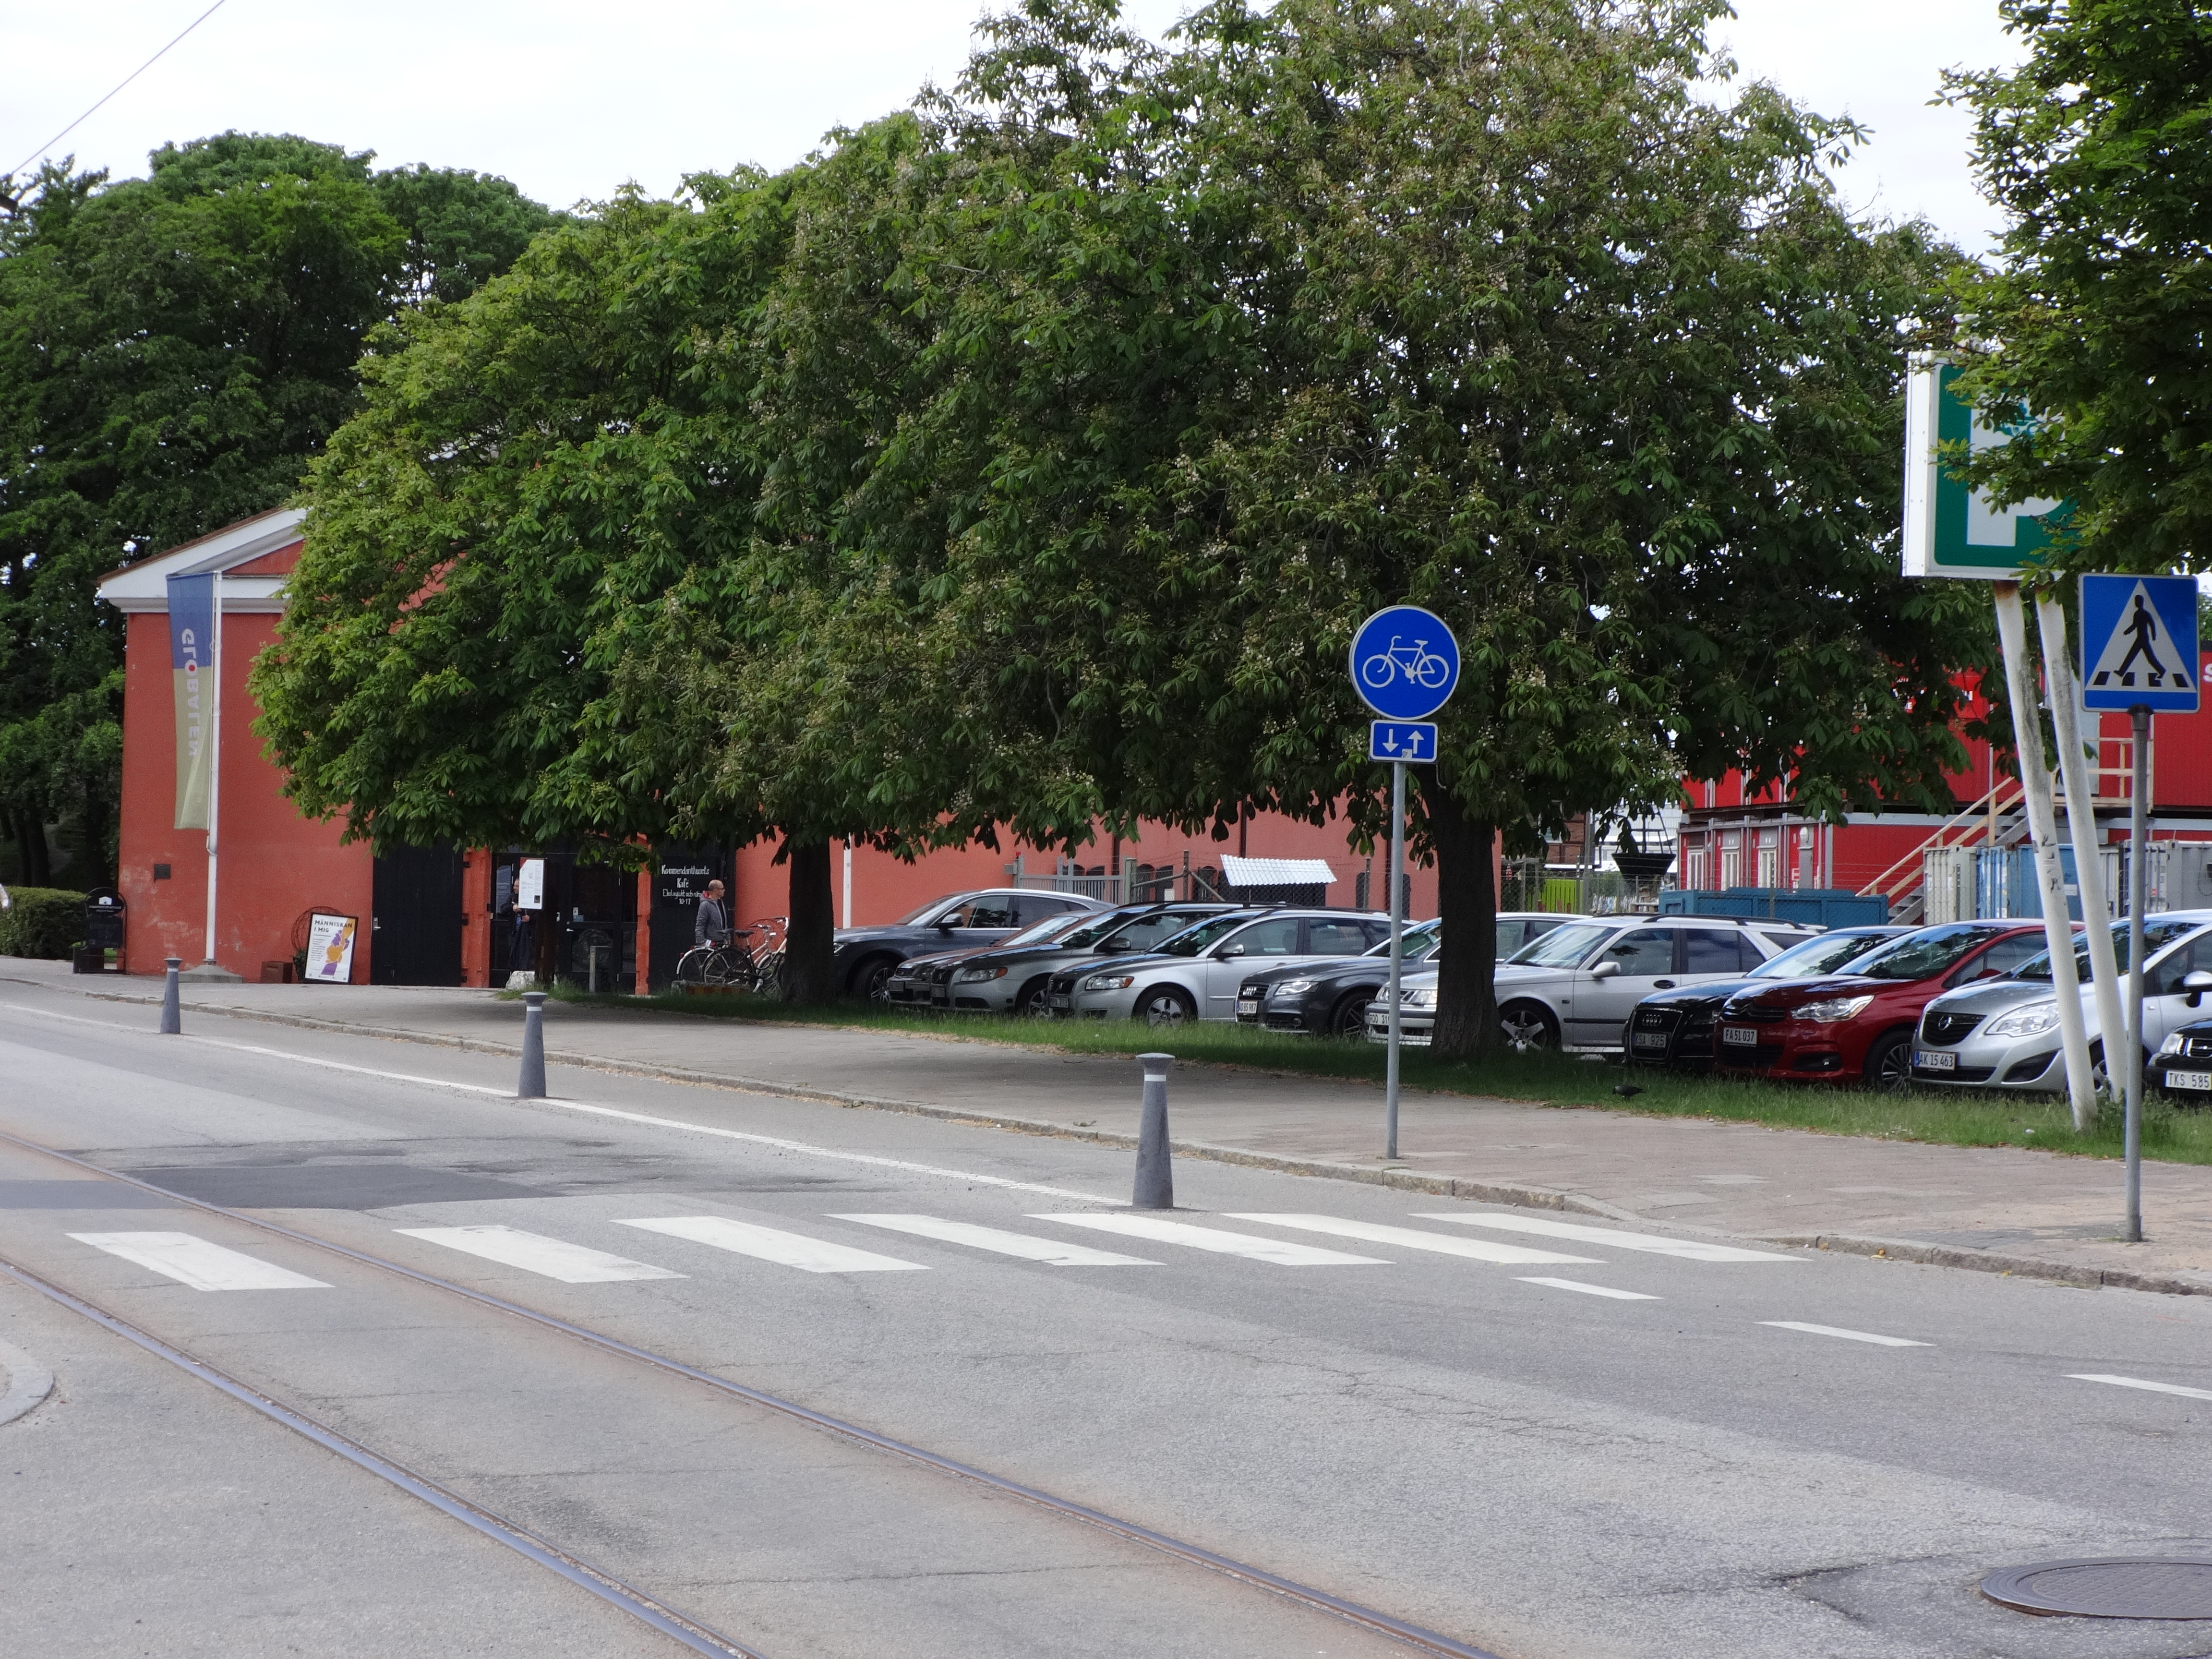 A street in Sweden. Note the sign marking how bikes and pedestrians share the sidewalk.